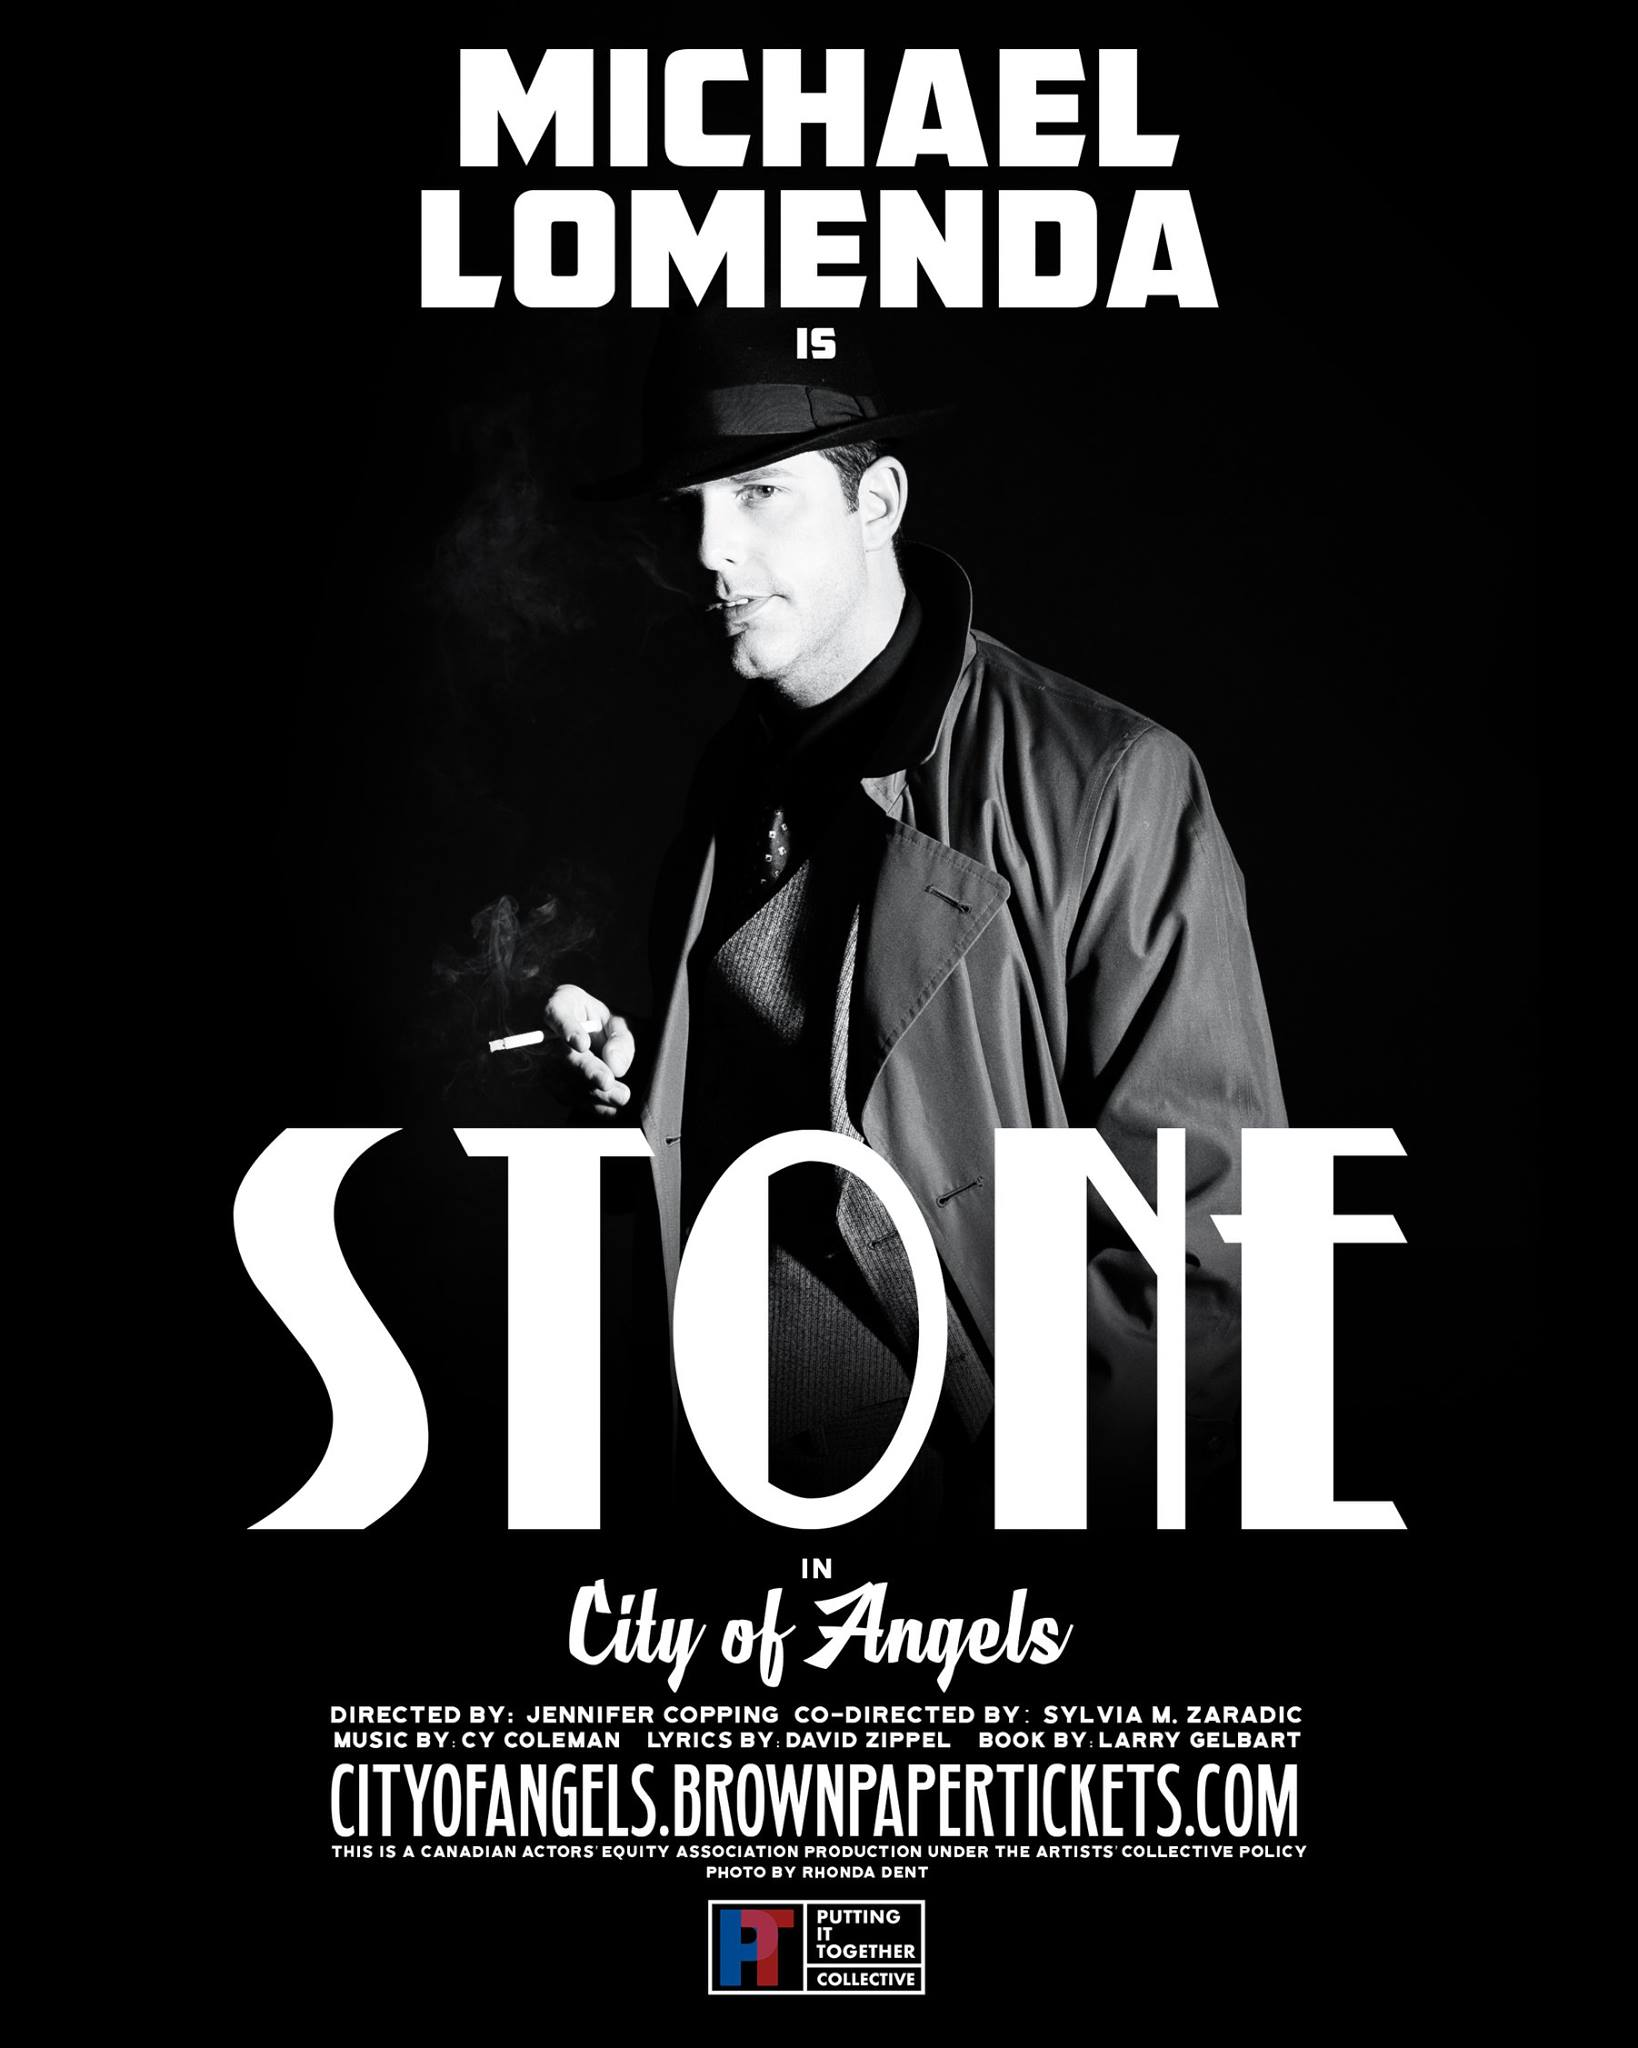 """Lomenda as """"Stone"""" in City of Angels"""